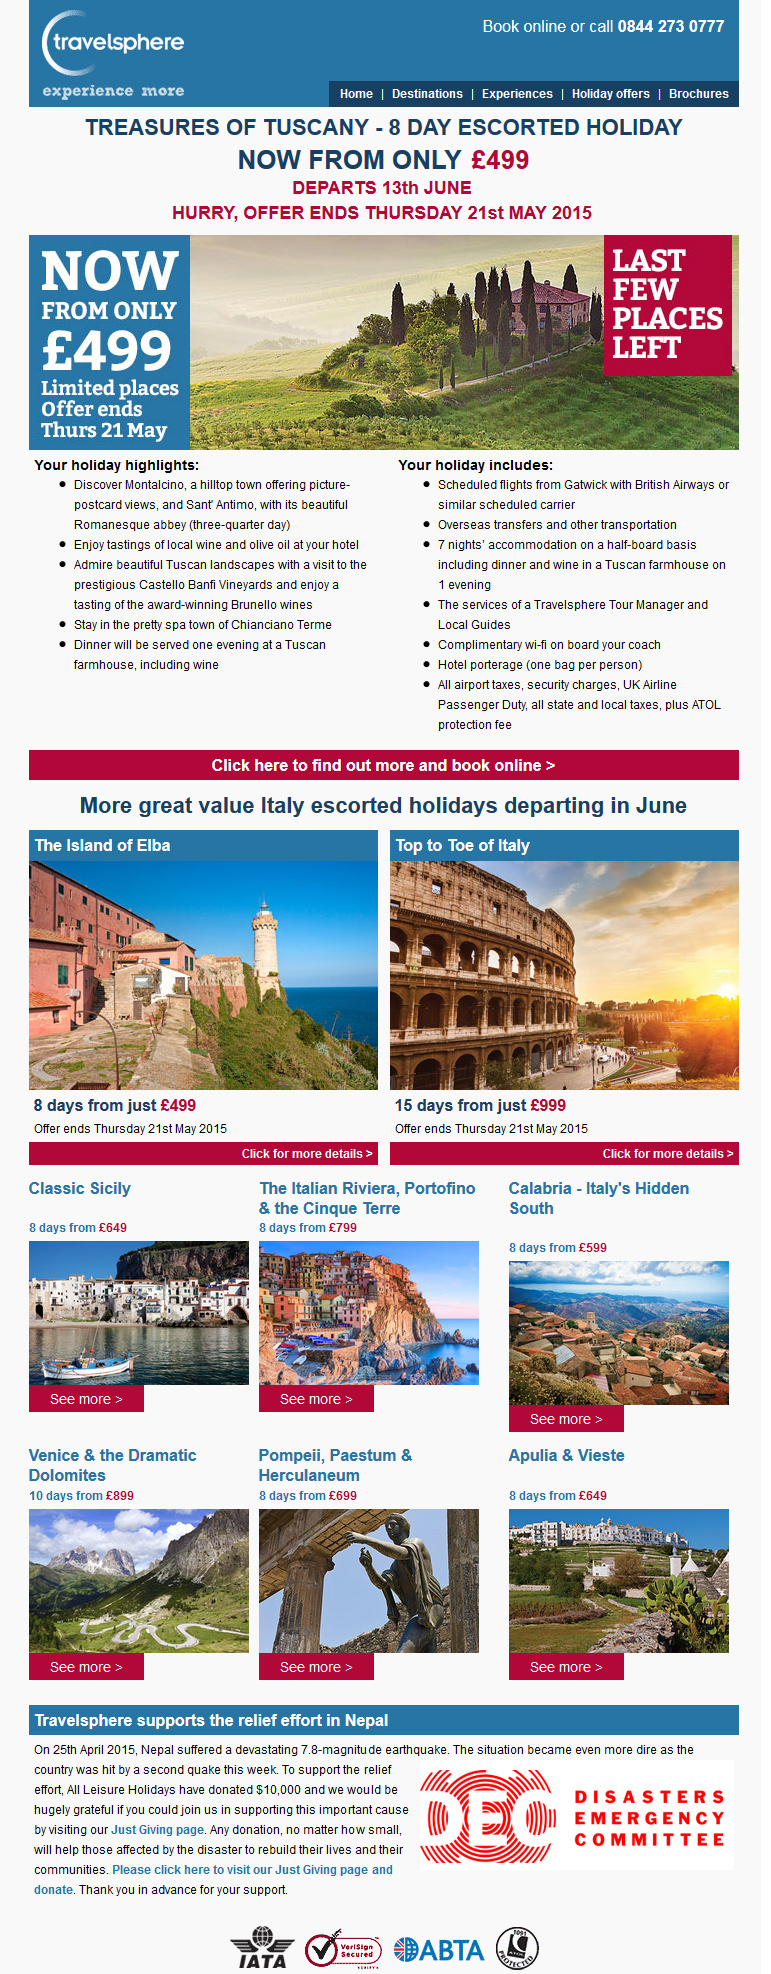 Travelsphere emails